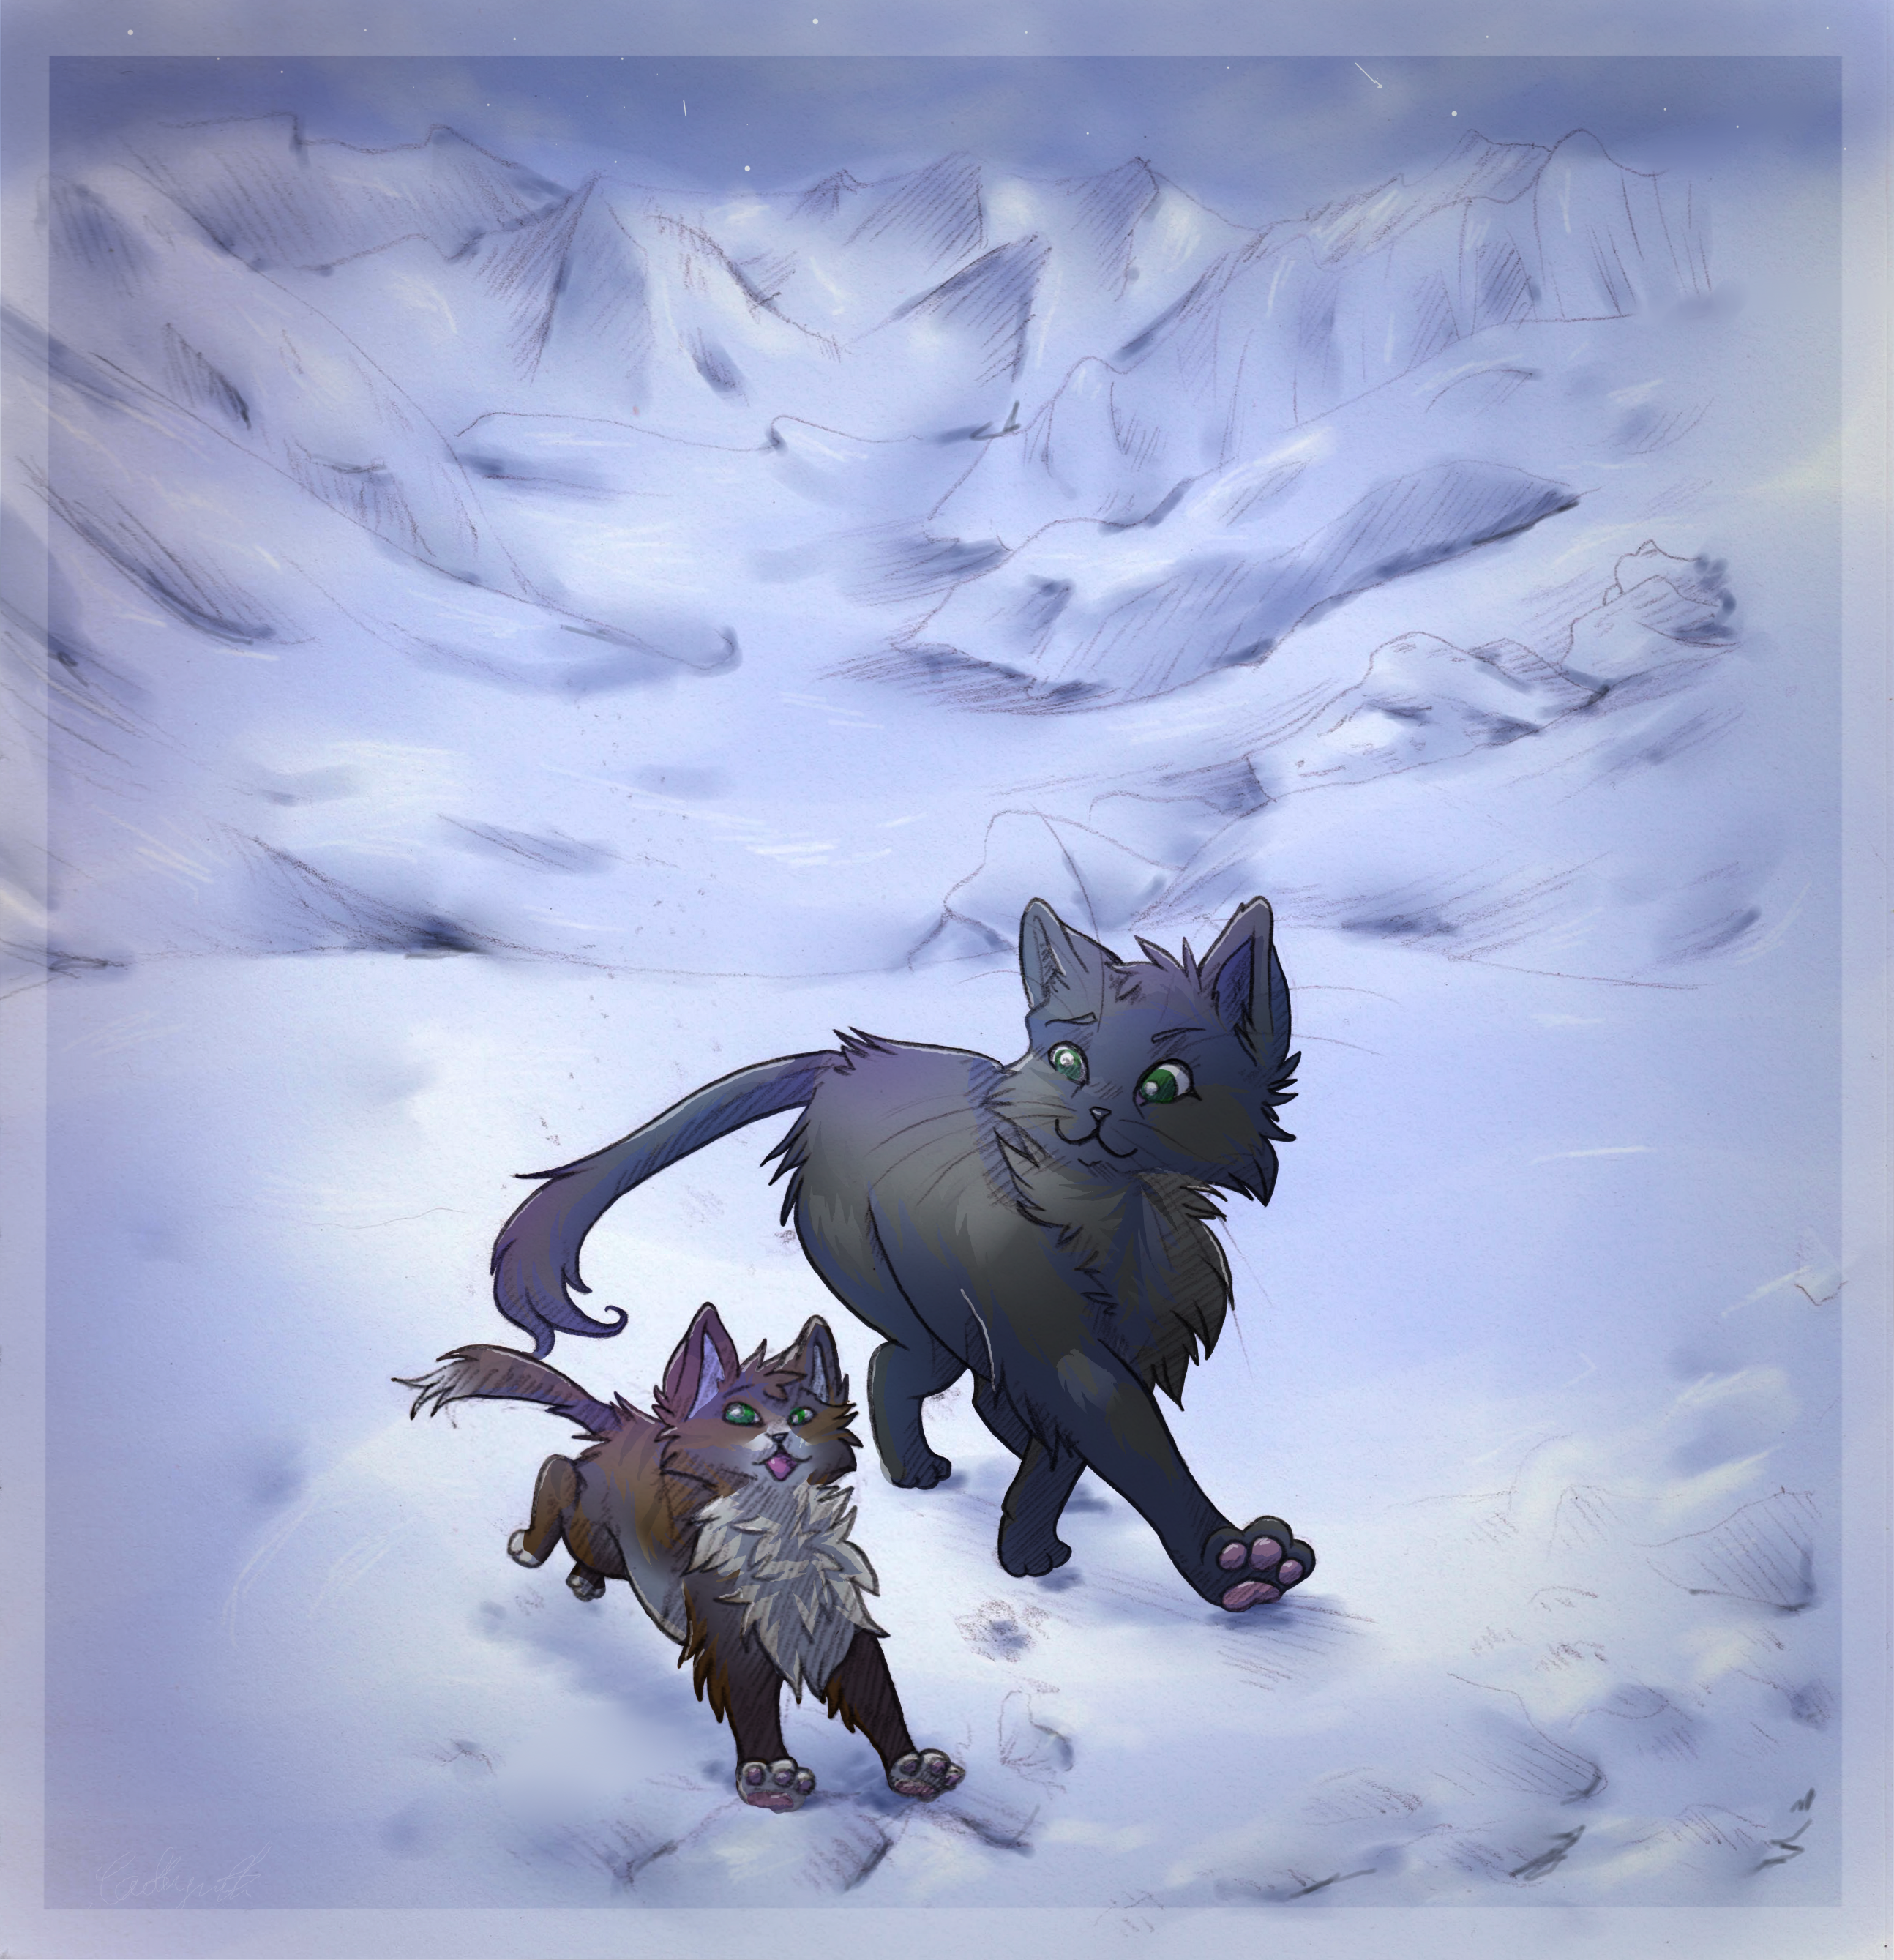 Which Dawn Of The Clans Warrior Cat Are You: Gray Wing And Jagged Peak I Think.... I'm Not Sure. Doesn